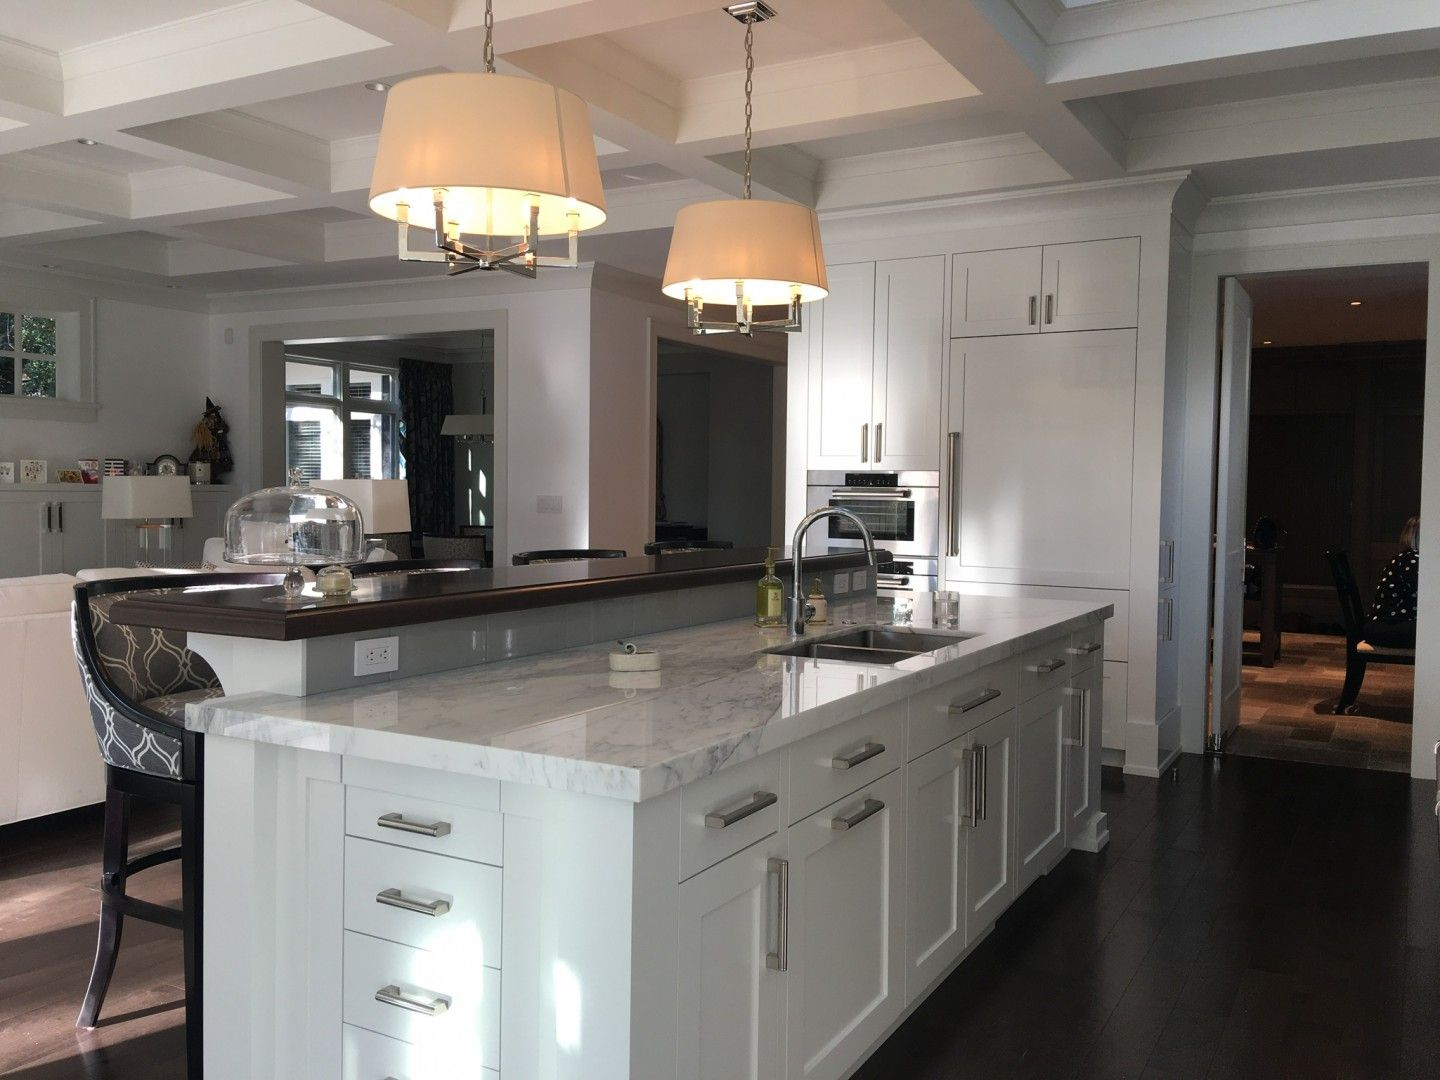 Kitchen Design Island View Traditional Kitchen by Shelley Scales ...